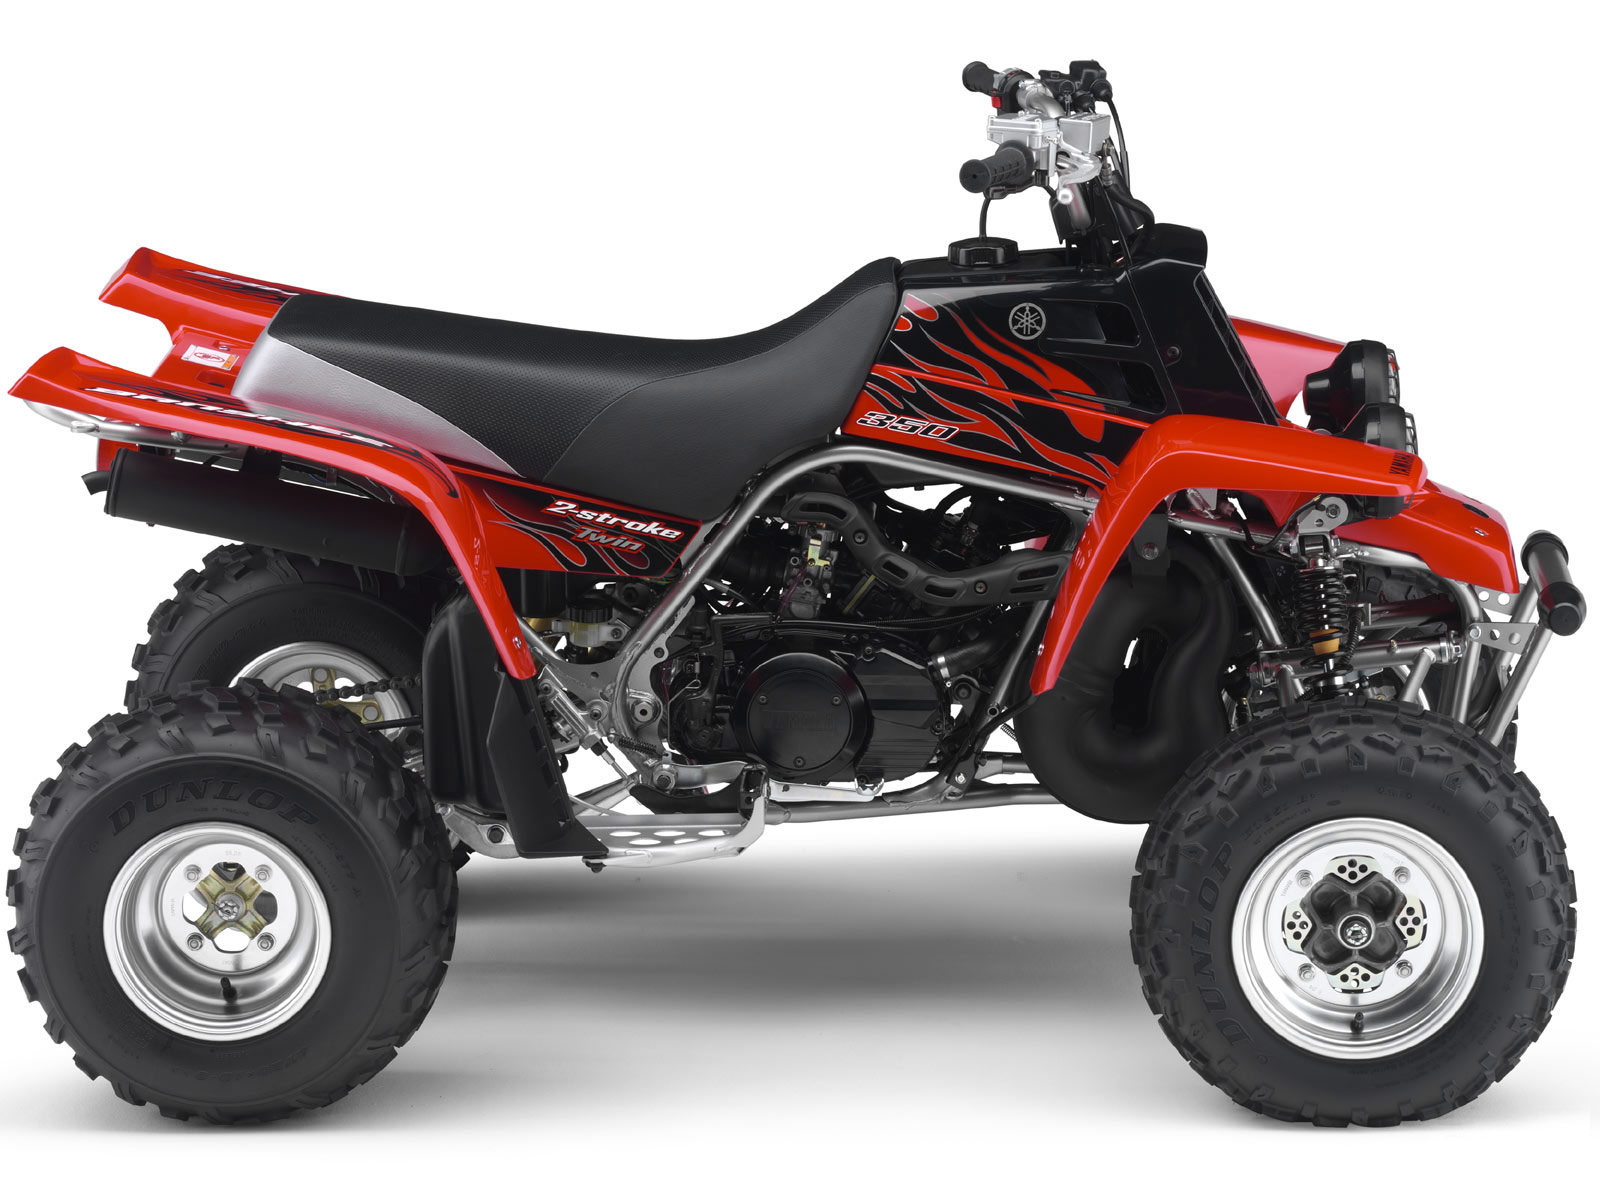 Yamaha Atv Pictures 2006 Banshee 350 Accident Lawyers Info 2004 Warrior Wiring Diagram Specifications